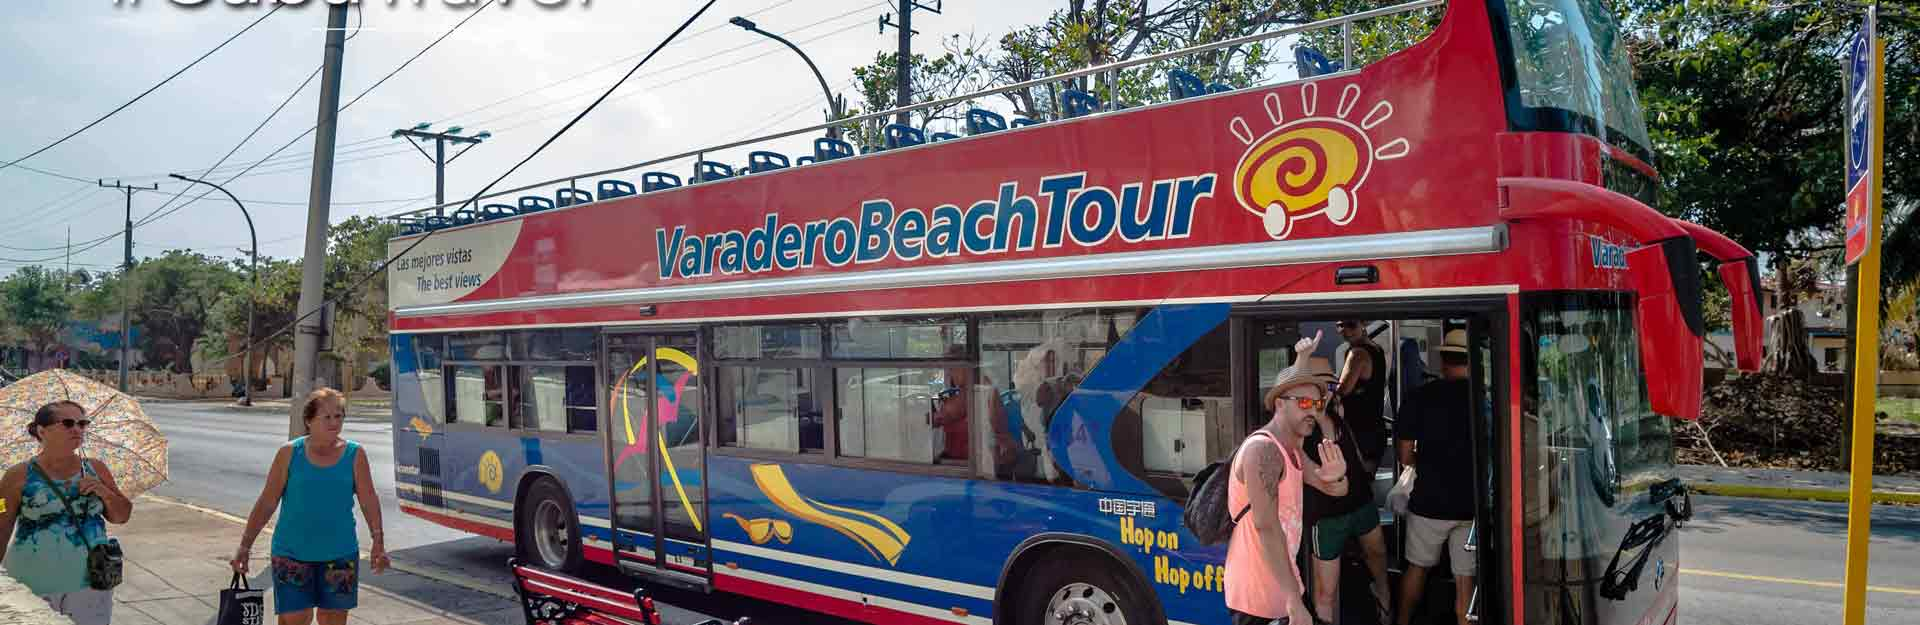 Bus Tour, Transporte, Varadero, Cuba Travel